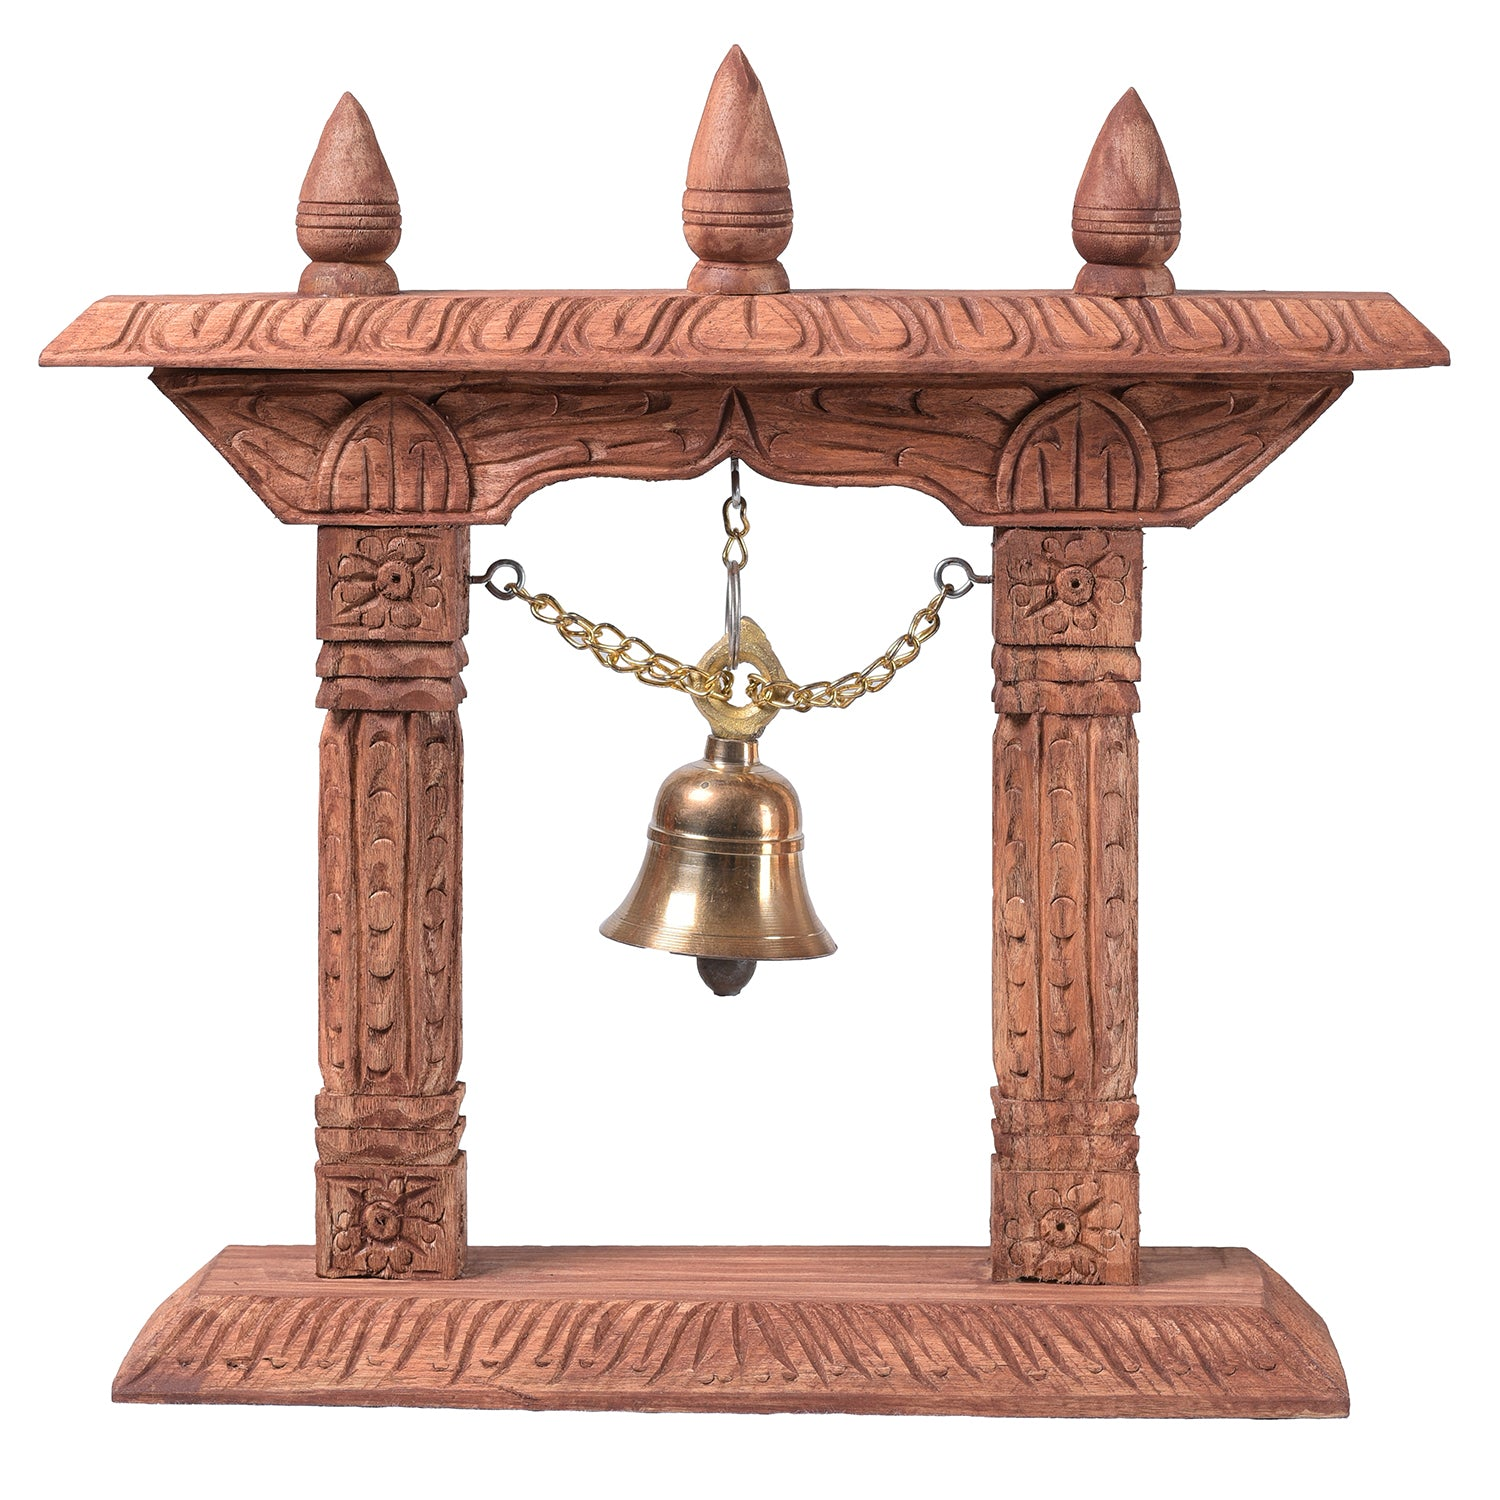 The Pagoda - Handcrafted Bell (Limited Edition)